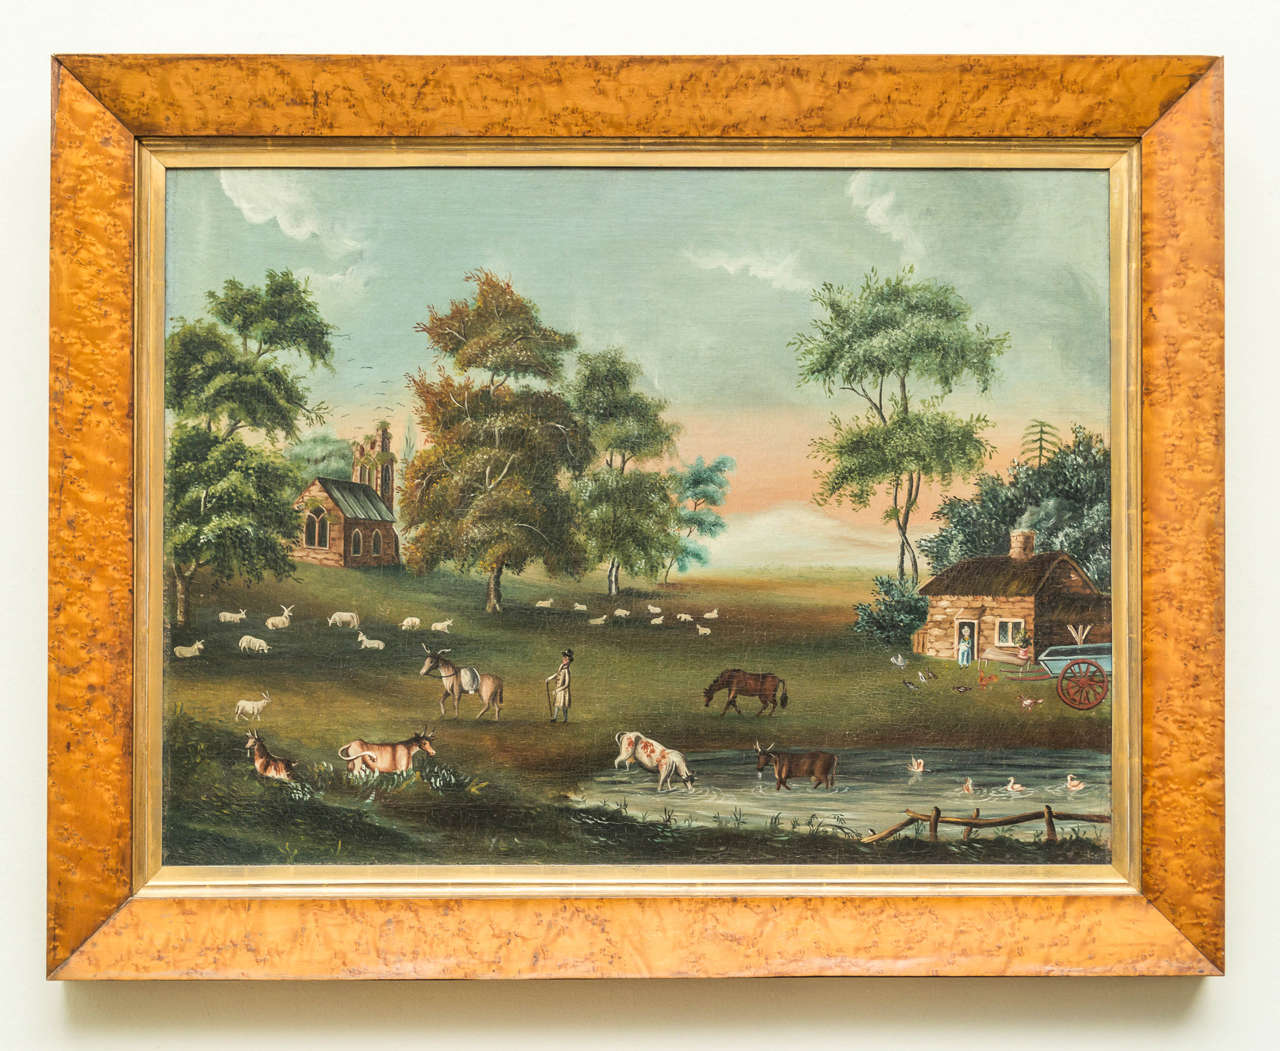 Early 19th century, English naive landscape painting with bird's-eye maple frame. Cleaned and stretched with good aged surface, circa 1825.